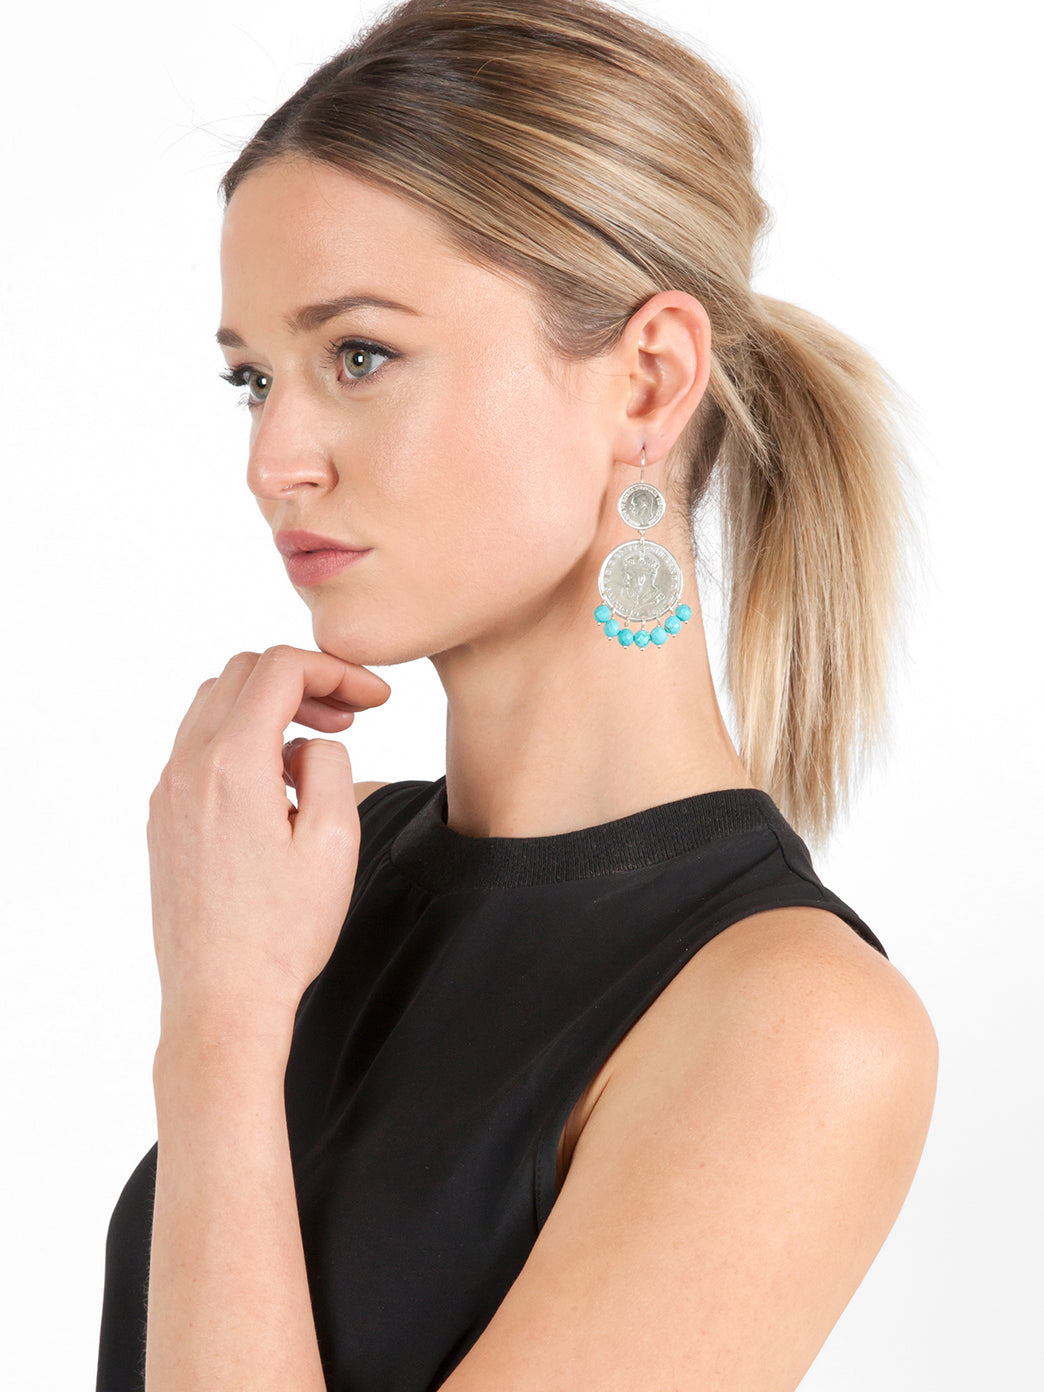 Fiorina Jewellery Mini Marrakesh Earrings Turquoise Model